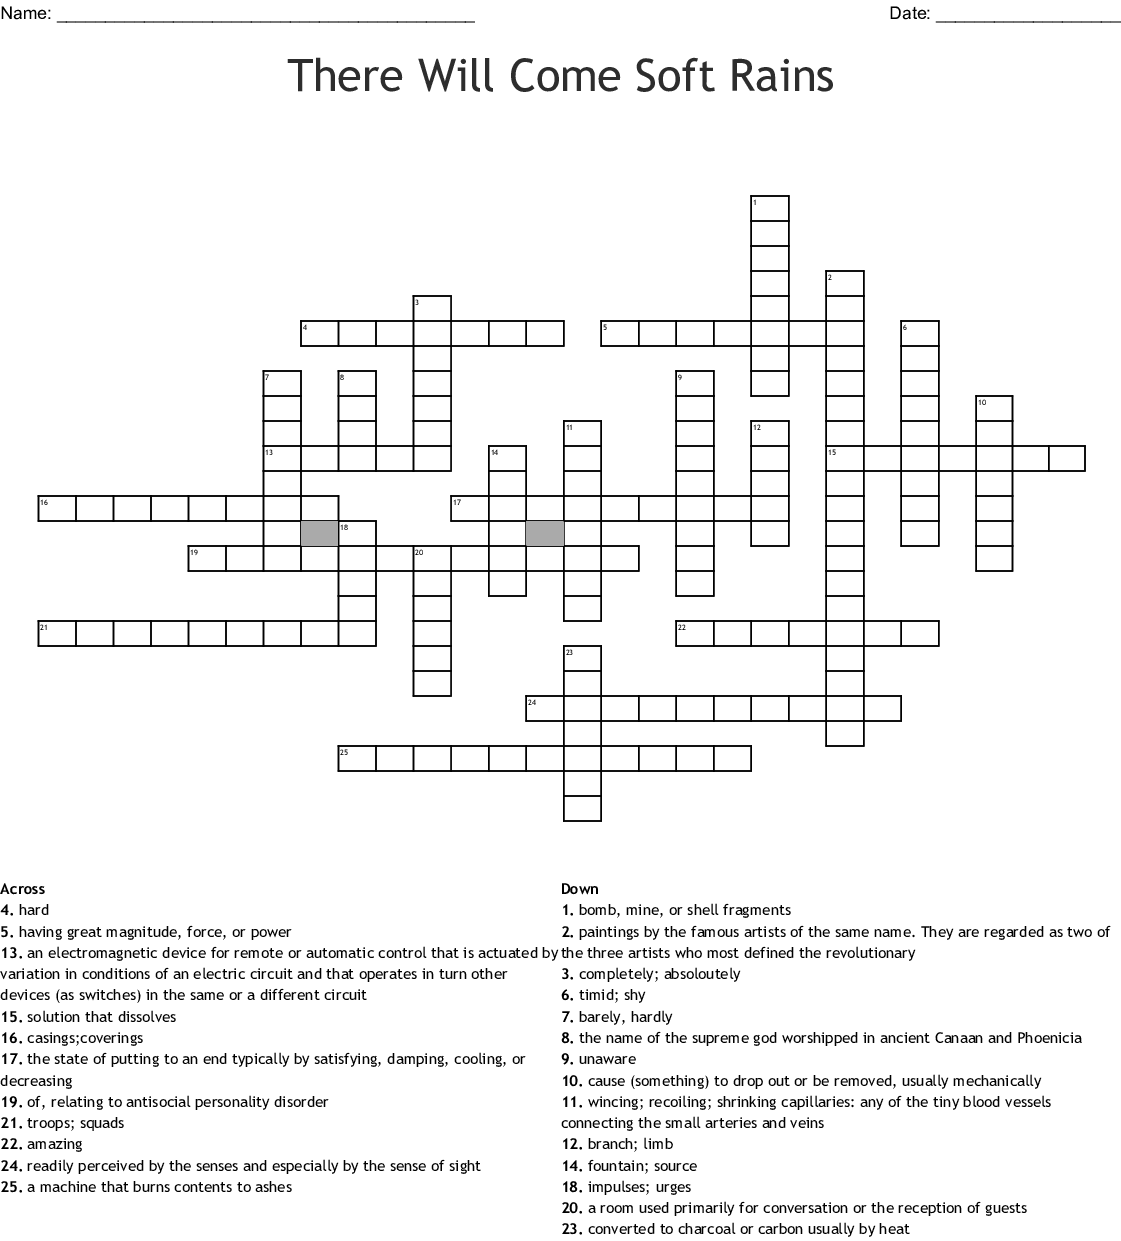 There Will Come Soft Rains Word Search